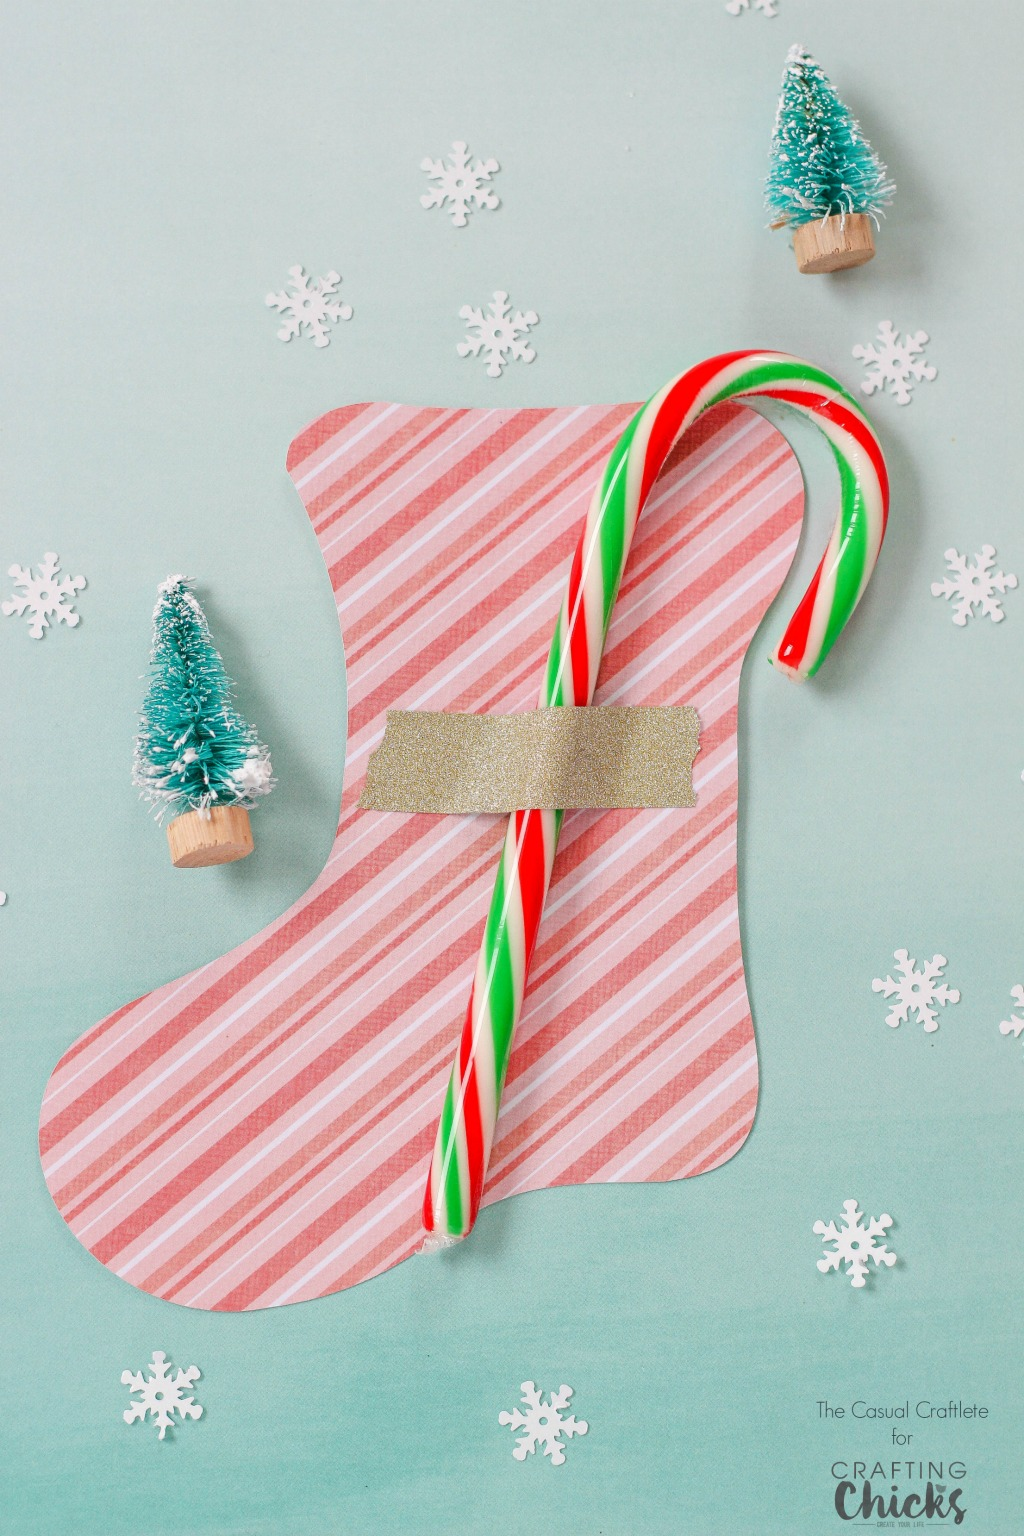 Use this Free Printable Stocking Template for a cute and easy gift idea for kids. Attach a candy cane using tape and you're done!